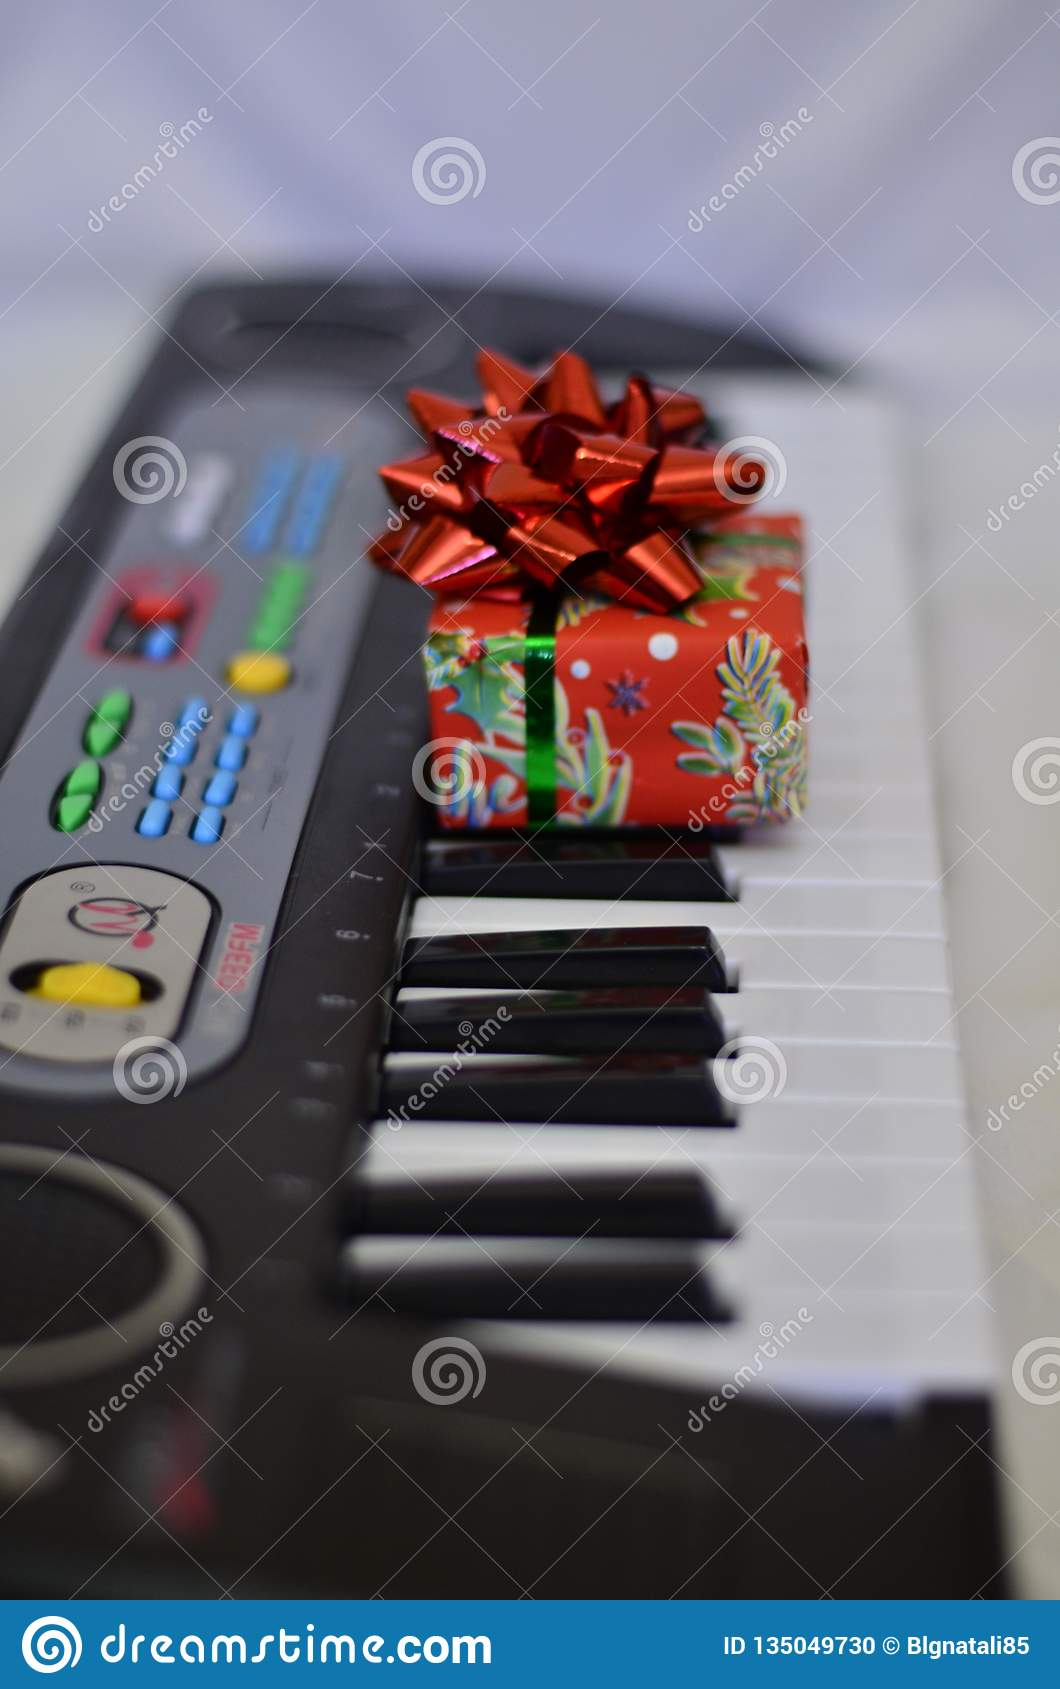 Gift close-up on synth keys with a soft blurred background